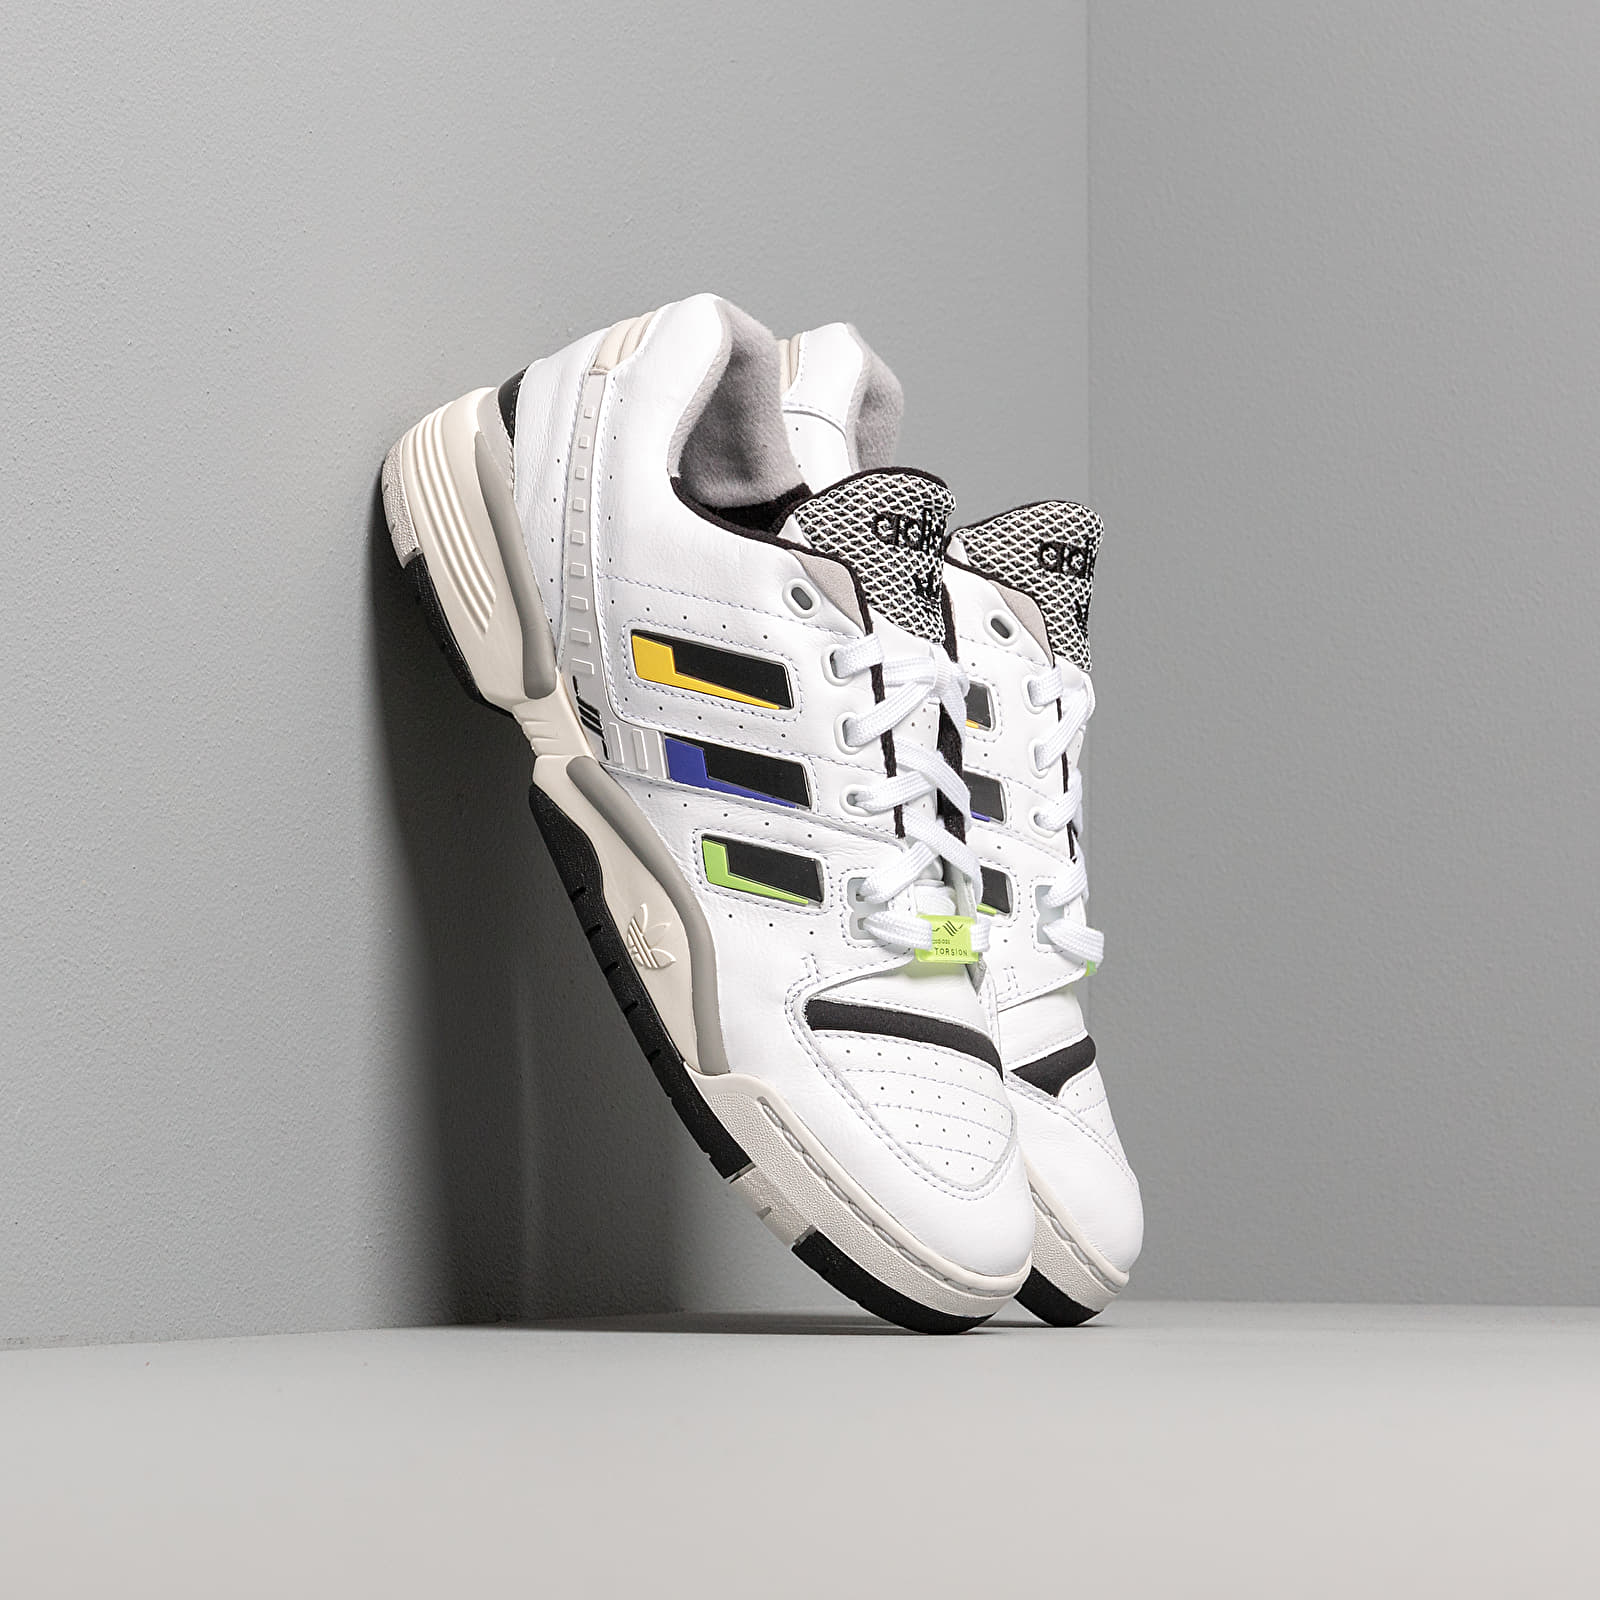 Moški čevlji adidas Torsion Comp Ftw White/ Core Black/ Solar Yellow